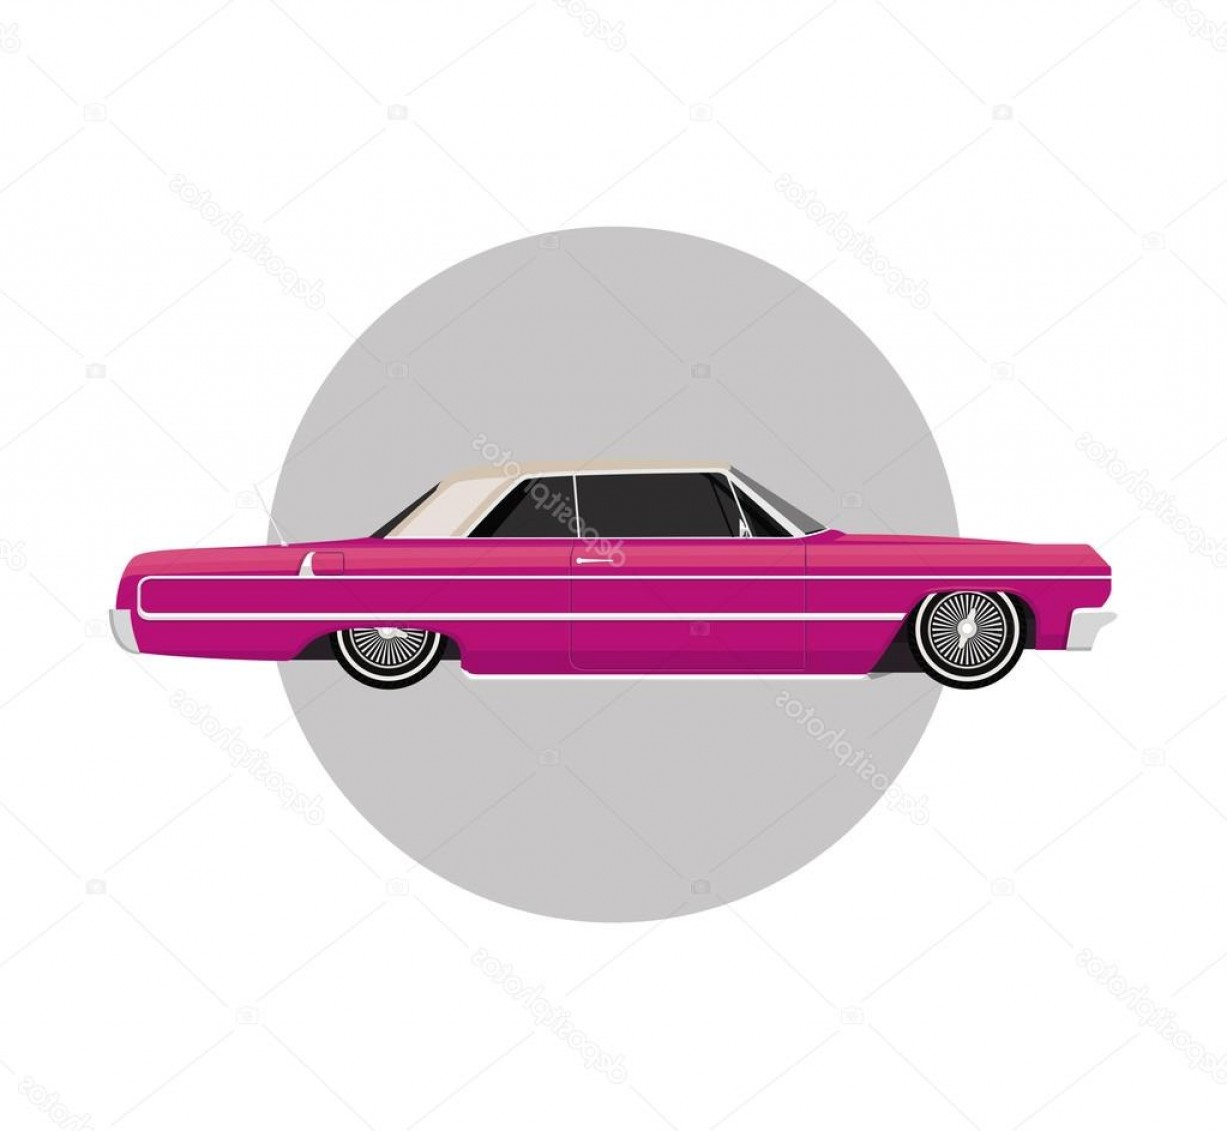 Lowrider Vector: Stock Illustration Pink Lowrider On Gray Round